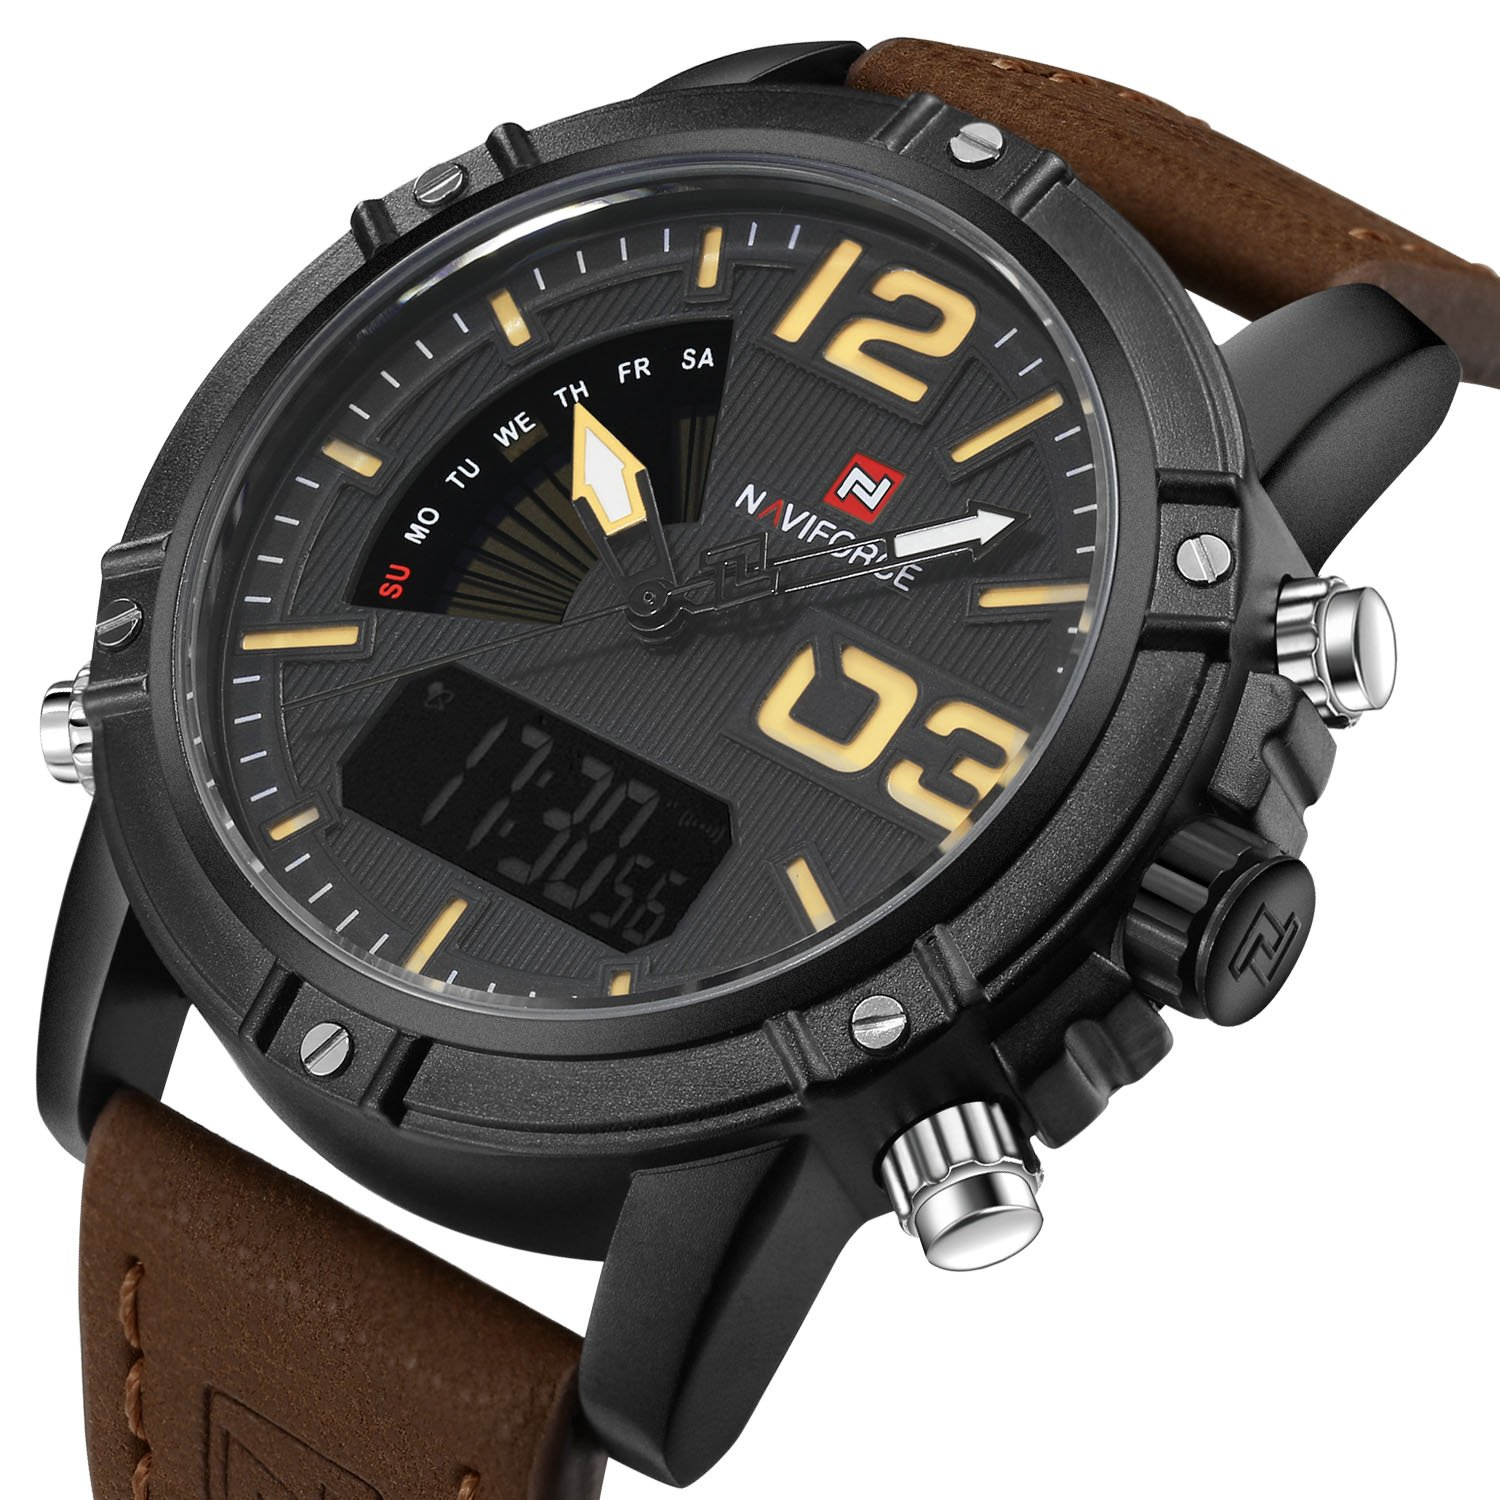 print digital analog product military watches men for analogue unique watch sports faas